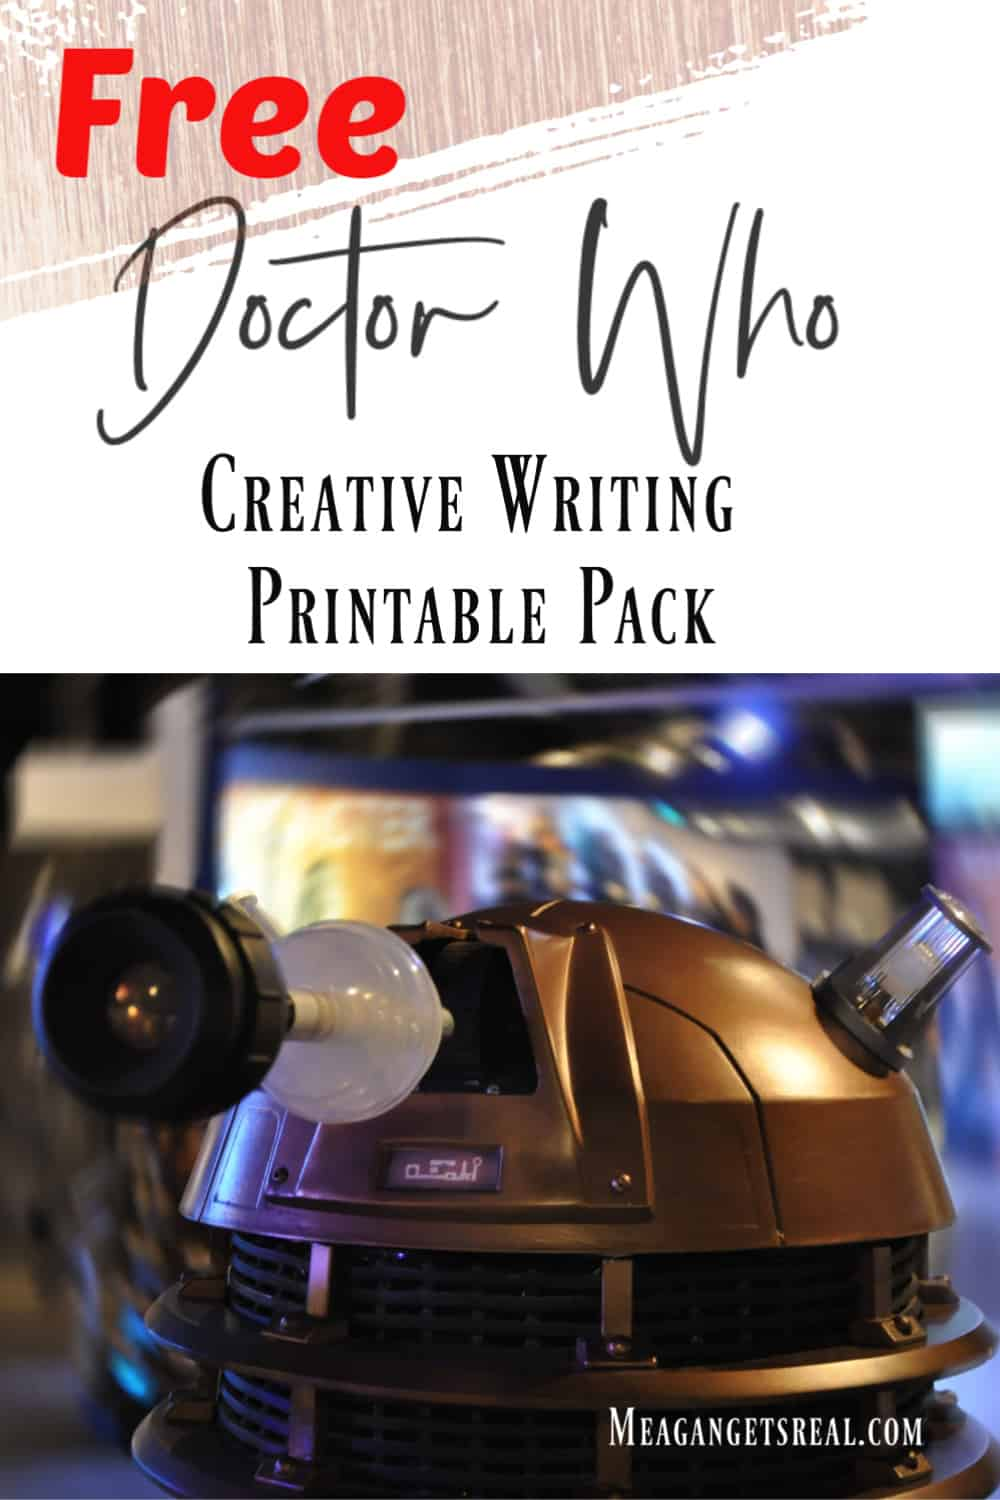 Are you working on creative writing with a whovian this year? Don't miss these Doctor Who Inspired writing printable pages!